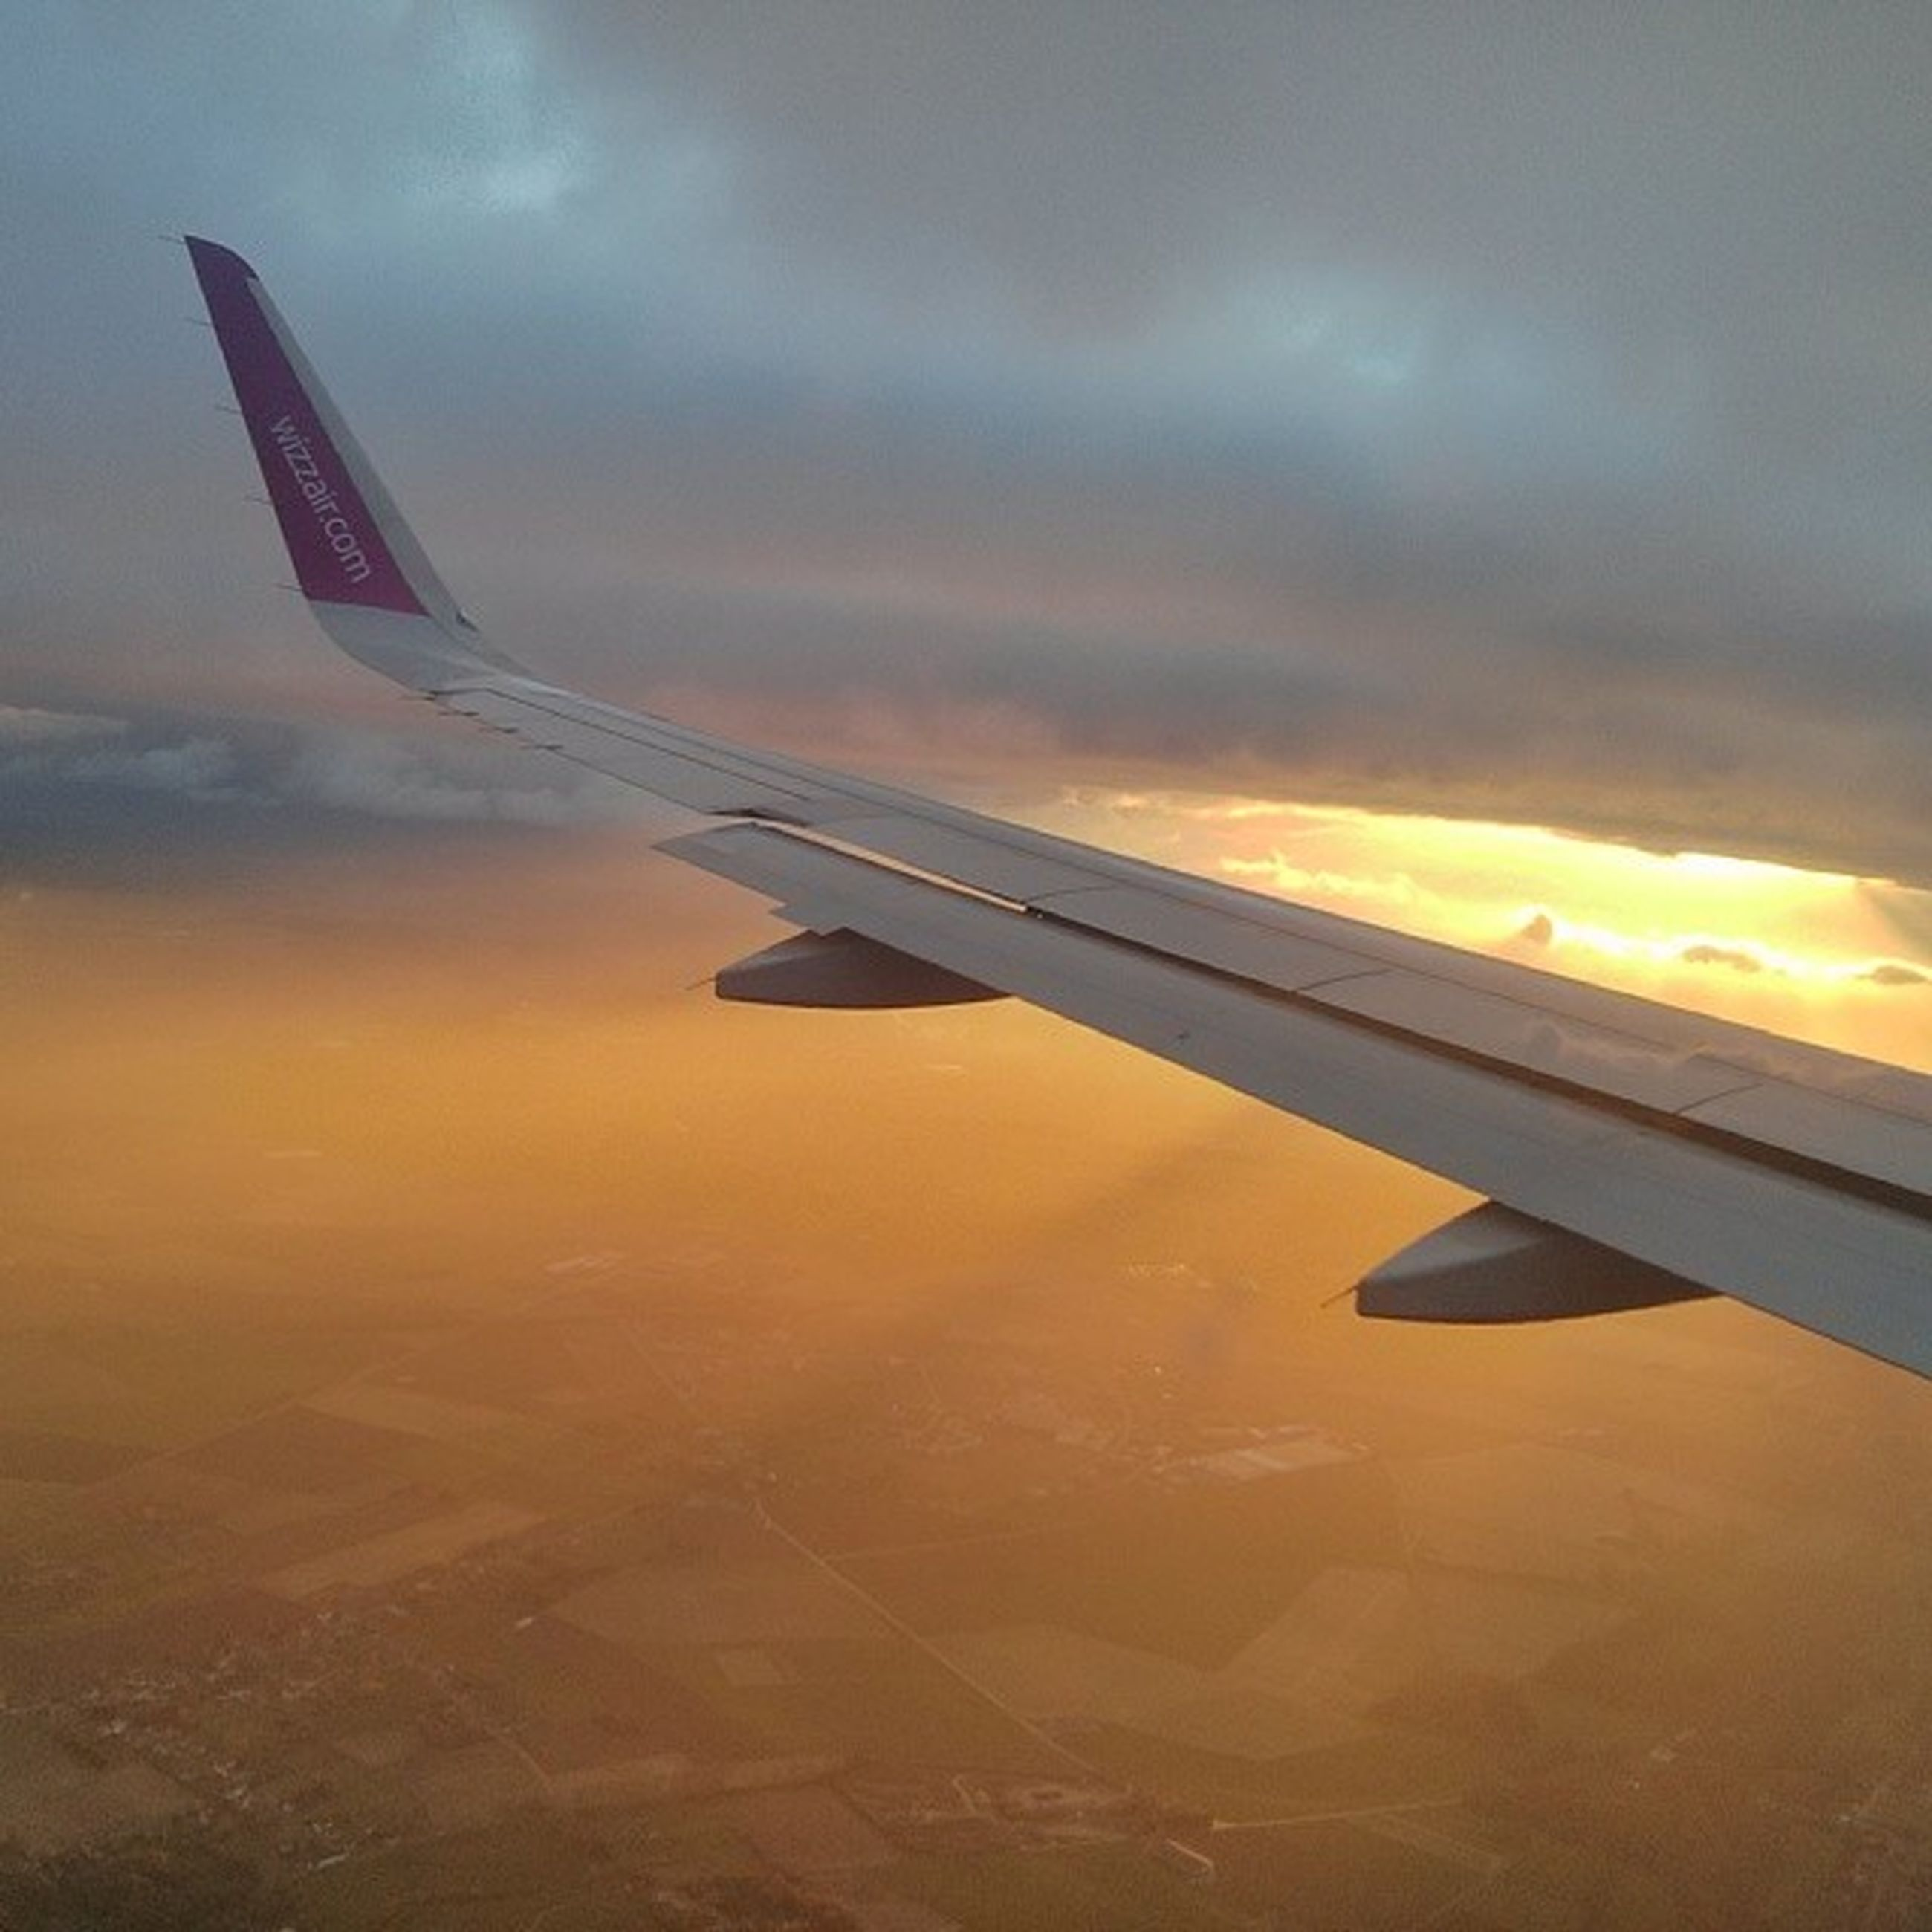 airplane, aircraft wing, air vehicle, transportation, flying, mode of transport, sunset, sky, cropped, part of, aerial view, cloud - sky, mid-air, travel, on the move, public transportation, orange color, airplane wing, journey, no people